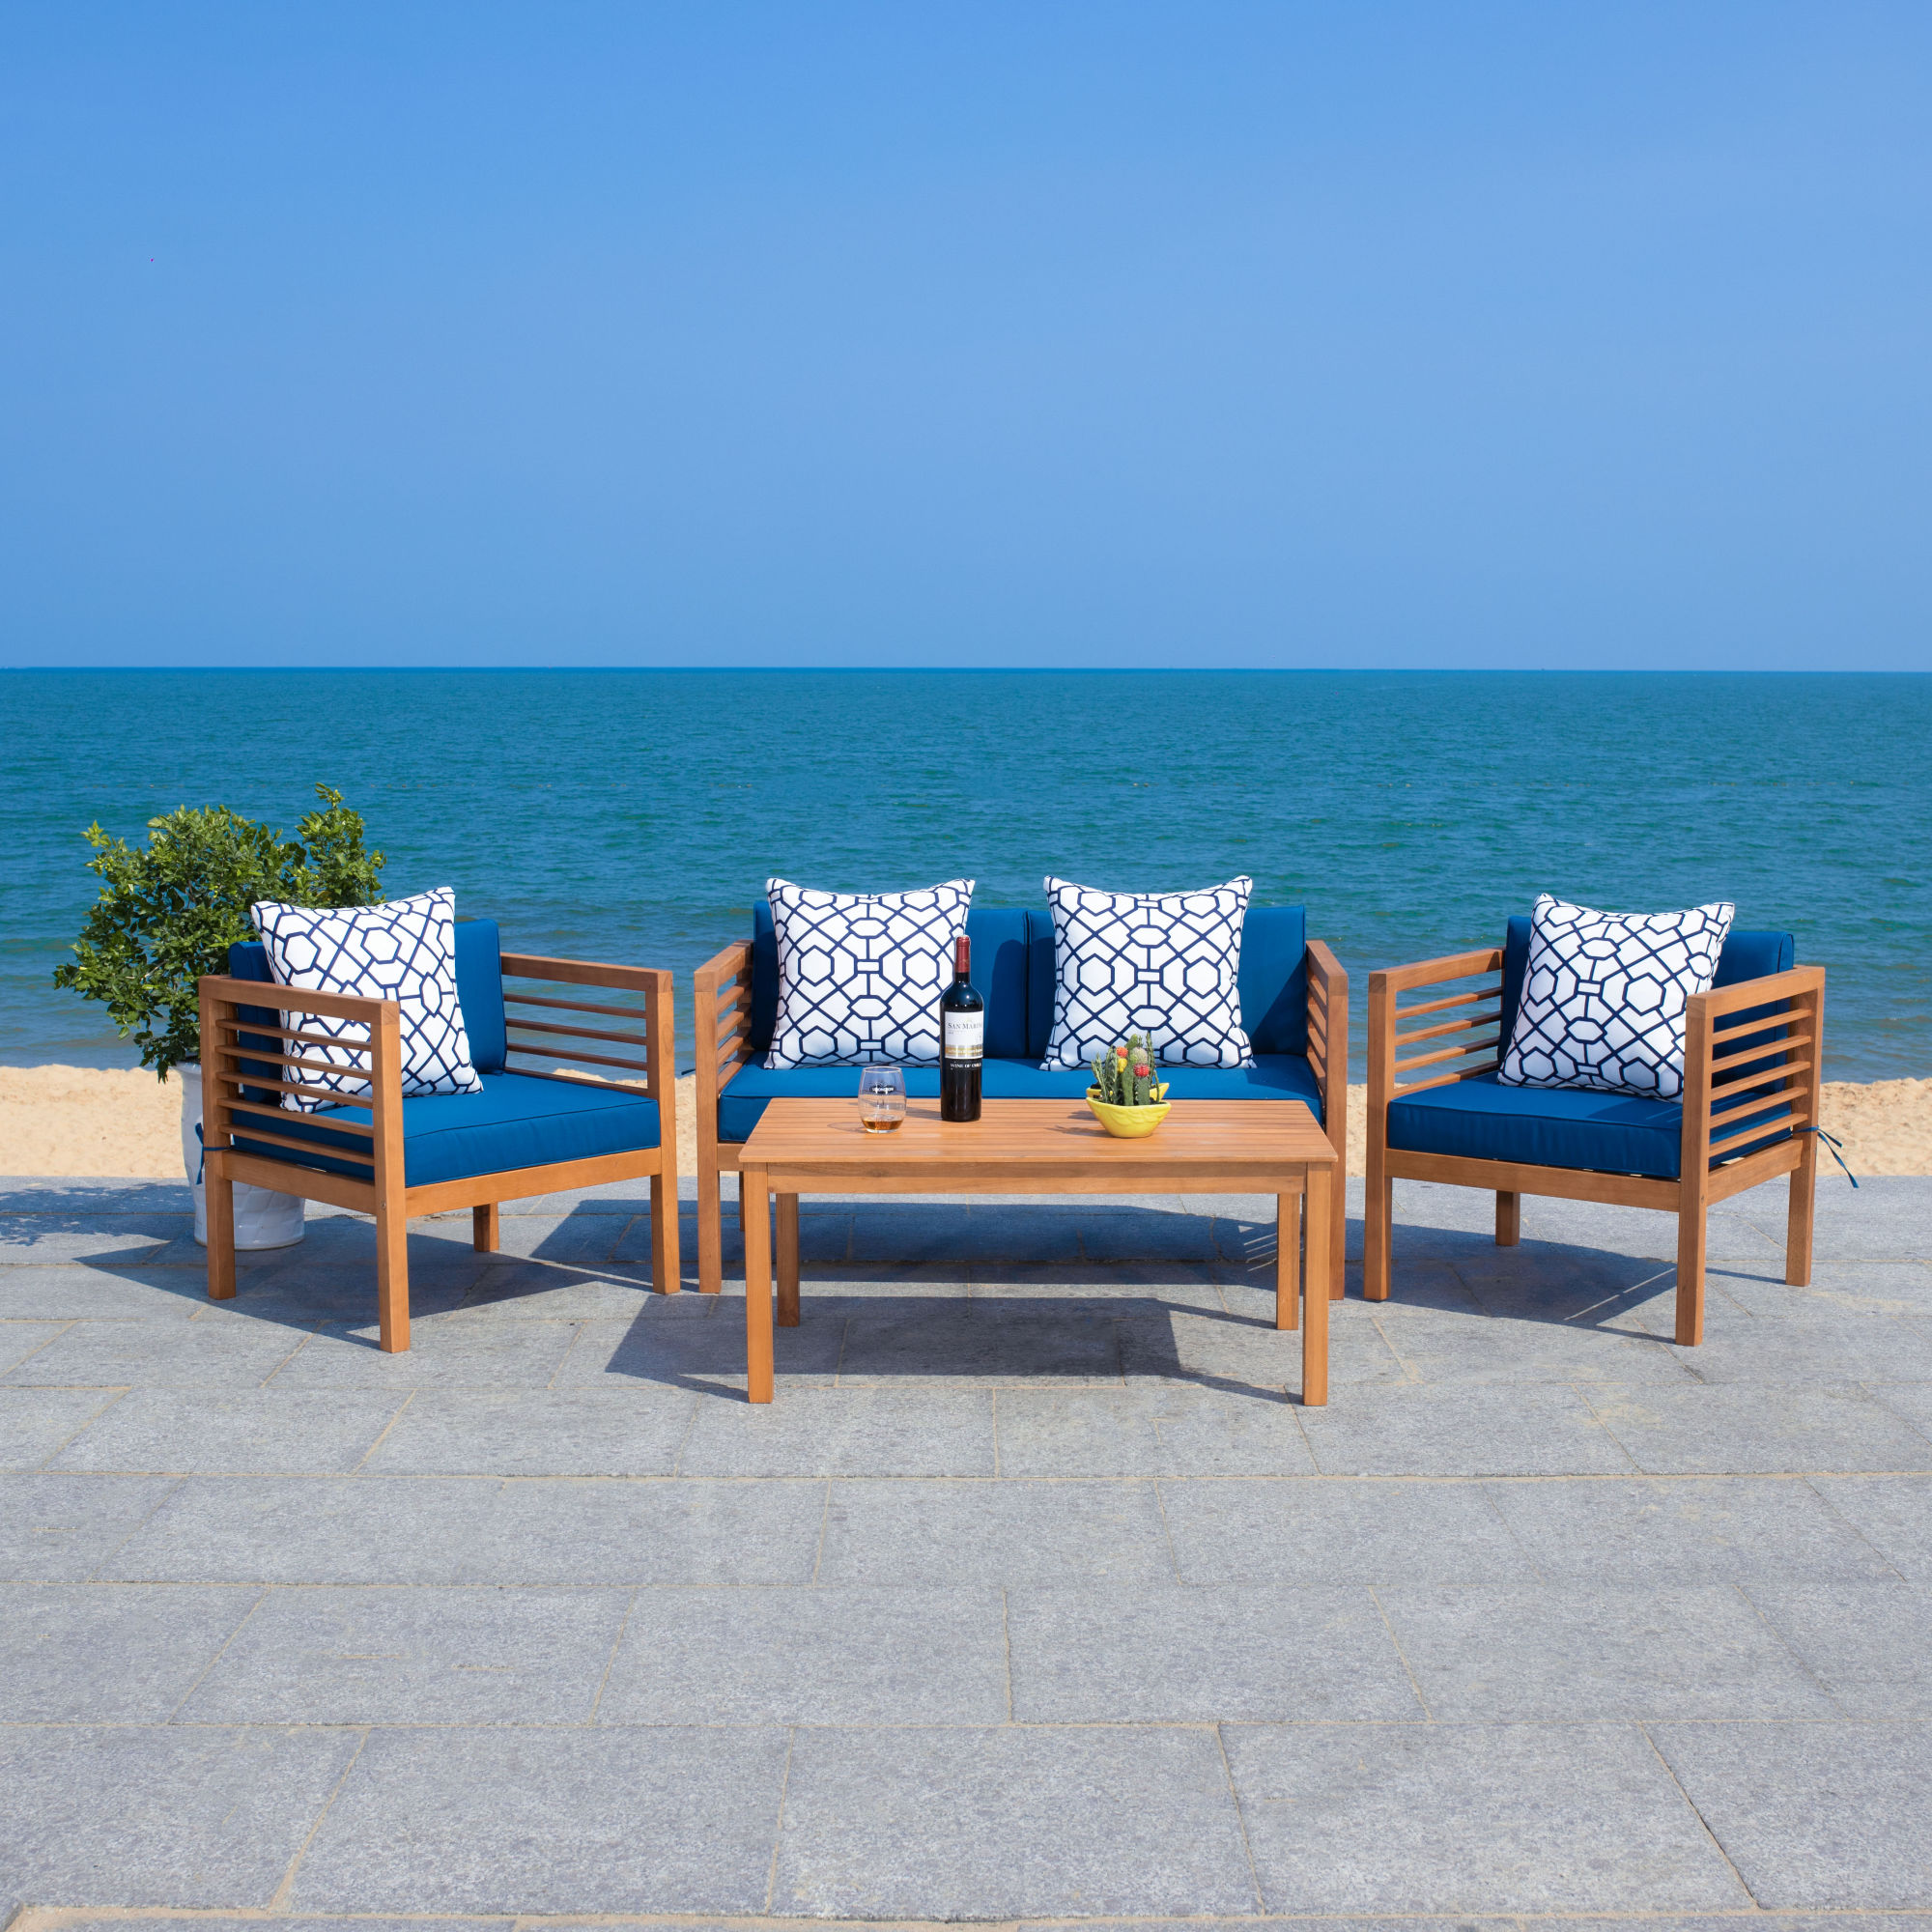 Alda 4 Pc Outdoor Set With Accent Pillows on Safavieh Alda 4Pc Outdoor Set id=72326